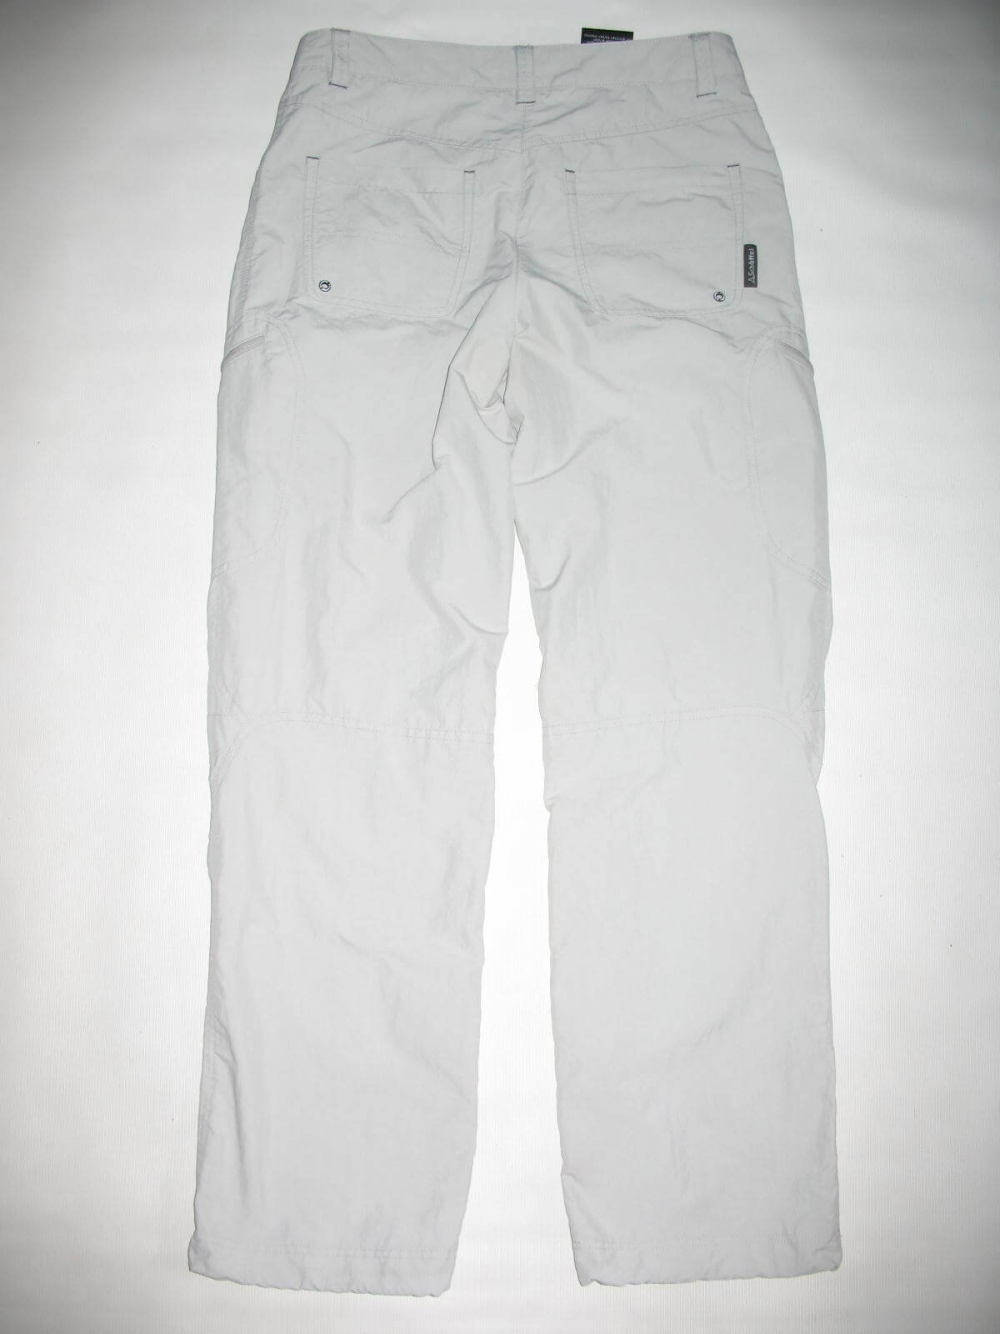 Штаны SCHOFFEL relax pants lady (размер M) - 2